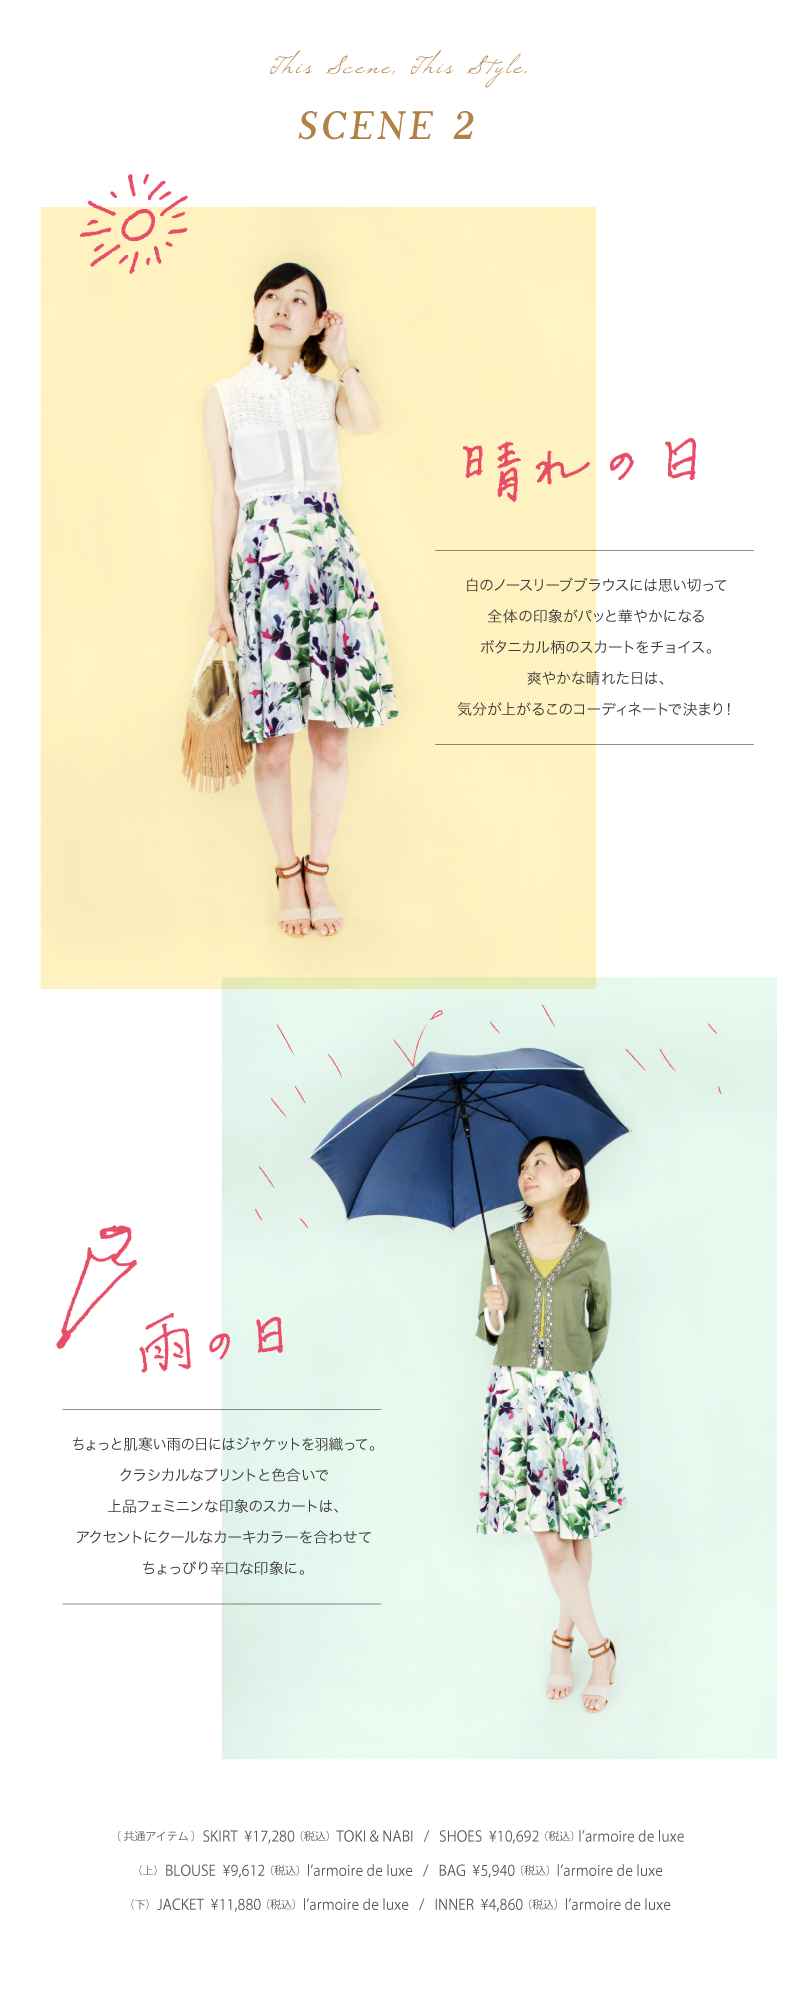 ac-RC_160602_all-weather-styles_vol1_s02.png